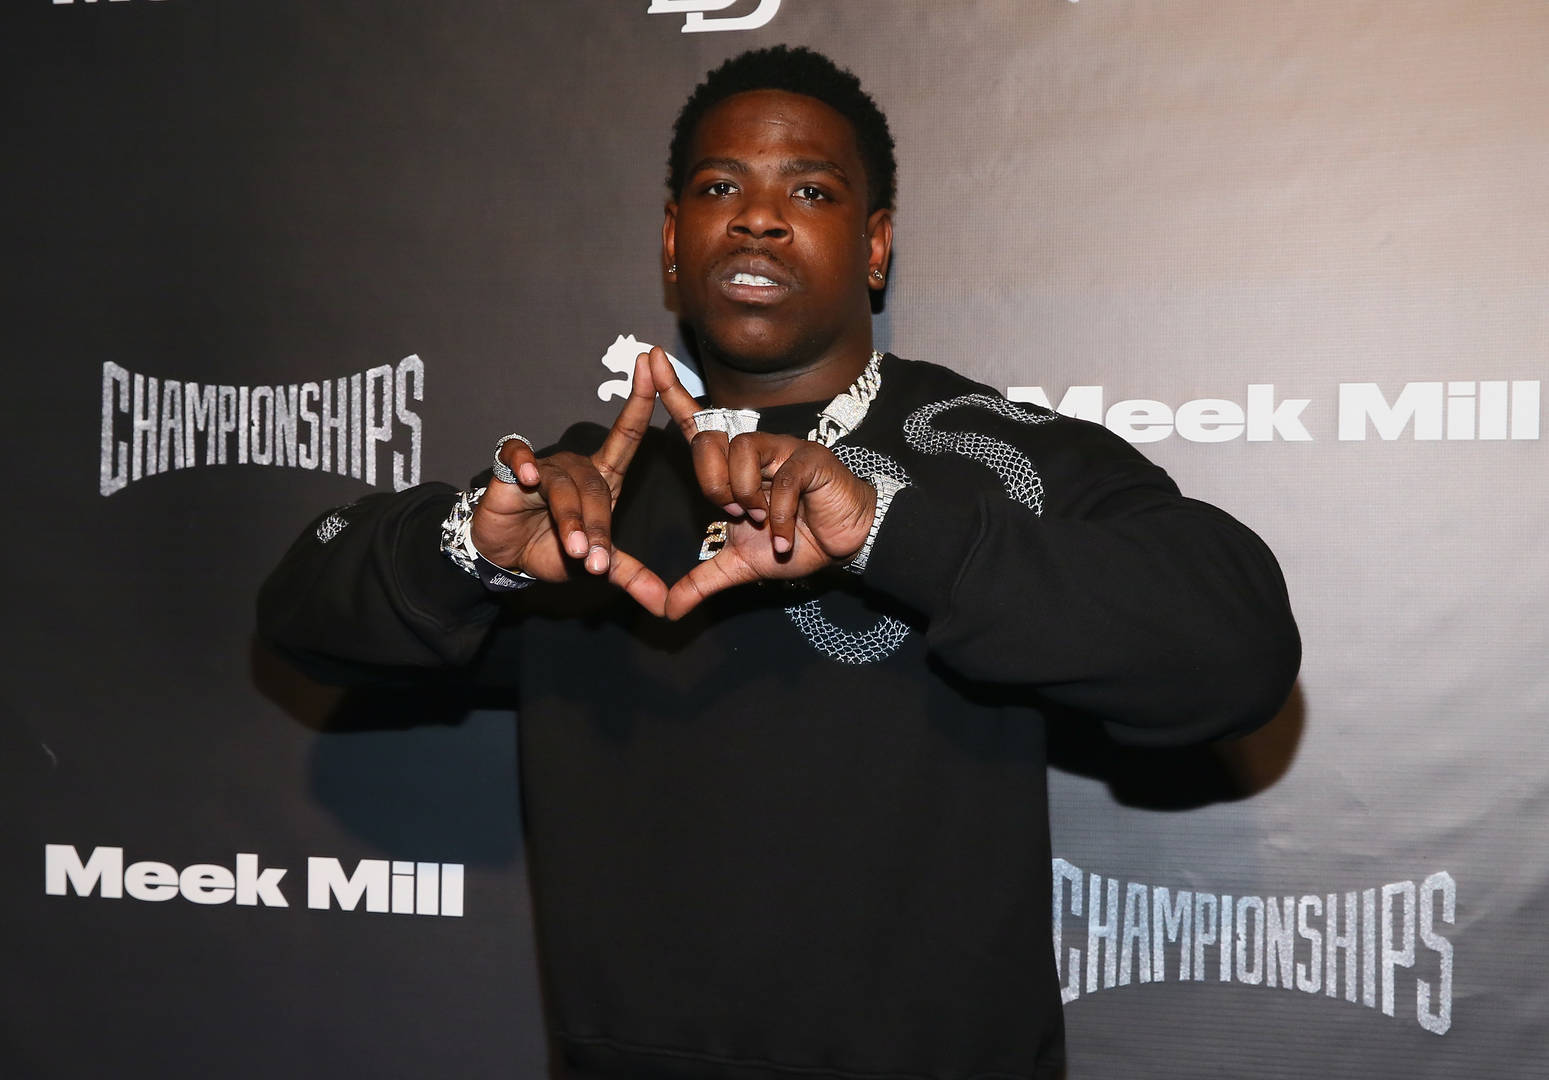 Rapper Casanova attends Meek Mill and PUMA celebrate CHAMPIONSHIPS album release party at PHD at the Dream Downtown on November 29, 2018 in New York City.